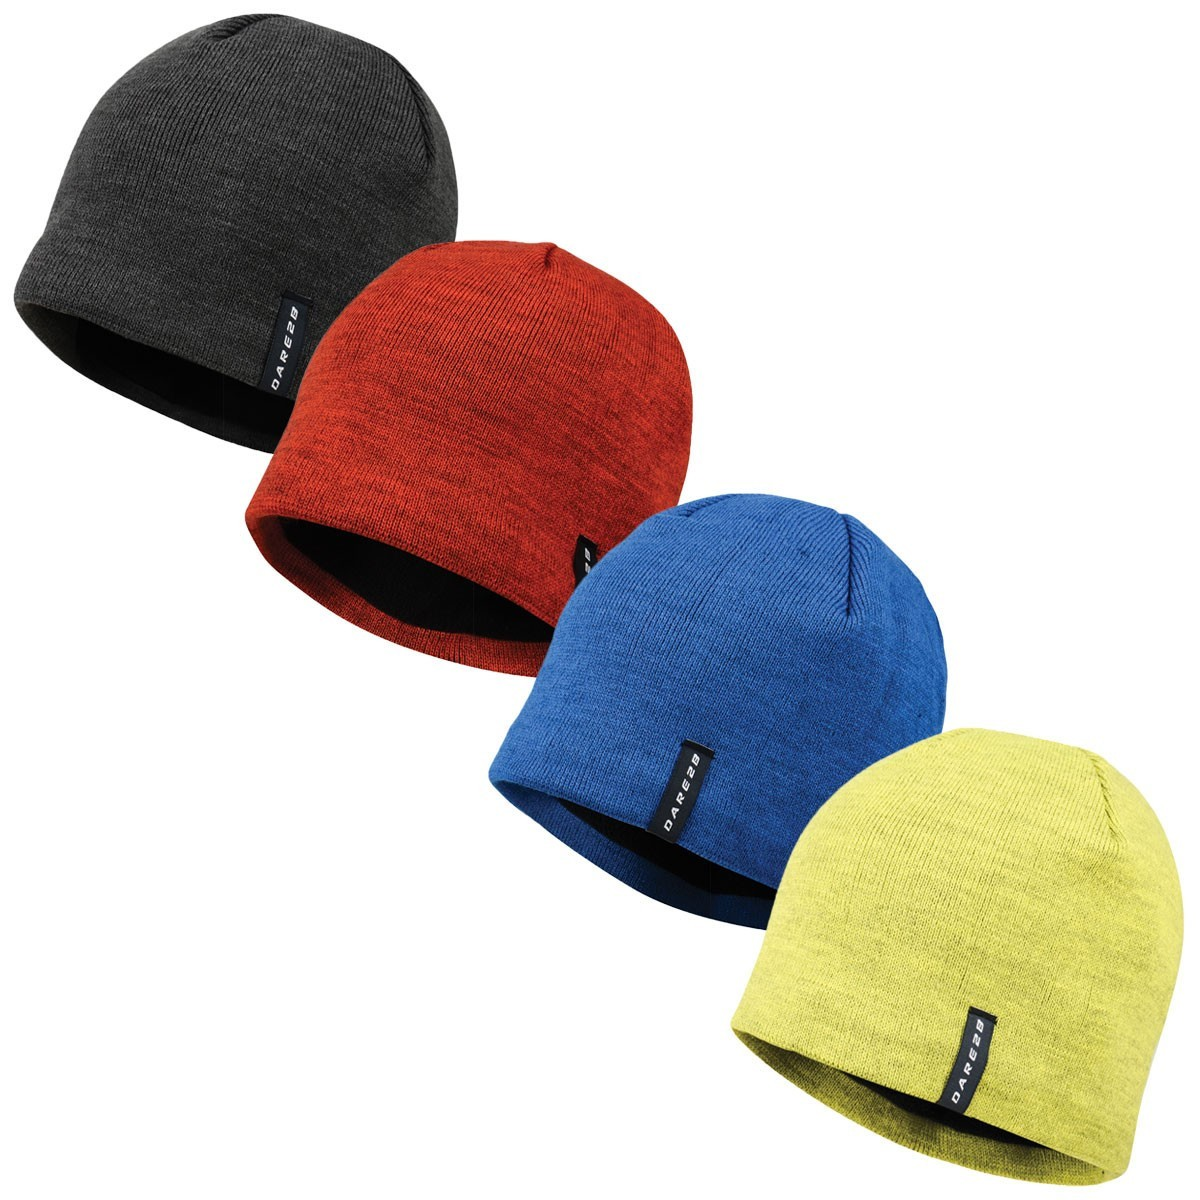 564a2155ad4 ... Dare2b Mens Prompted Beanie Fleece Hat.   Back. DMC321